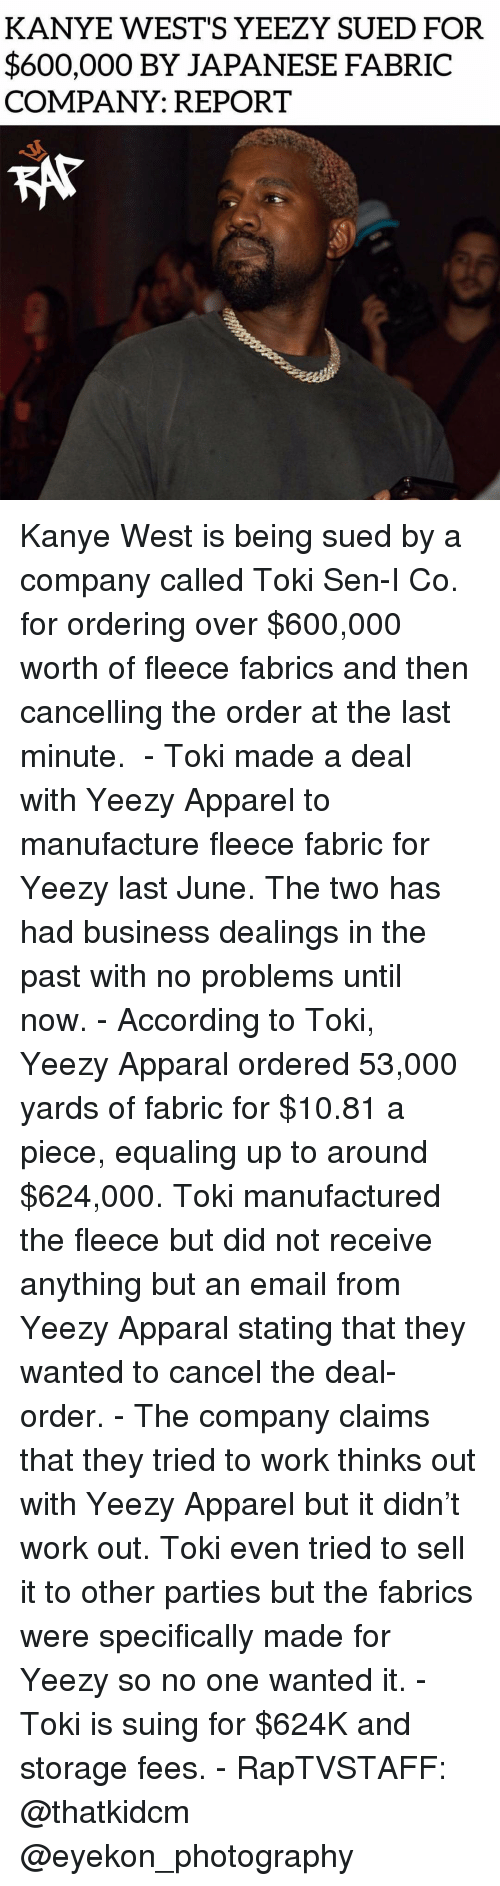 Kanye, Memes, and Yeezy: KANYE WEST'S YEEZY SUED FOR  $600,000 BY JAPANESE FABRIC  COMPANY: REPORT Kanye West is being sued by a company called Toki Sen-I Co. for ordering over $600,000 worth of fleece fabrics and then cancelling the order at the last minute. ⁣ -⁣ Toki made a deal with Yeezy Apparel to manufacture fleece fabric for Yeezy last June. The two has had business dealings in the past with no problems until now.⁣ -⁣ According to Toki, Yeezy Apparal ordered 53,000 yards of fabric for $10.81 a piece, equaling up to around $624,000. Toki manufactured the fleece but did not receive anything but an email from Yeezy Apparal stating that they wanted to cancel the deal-order.⁣ -⁣ The company claims that they tried to work thinks out with Yeezy Apparel but it didn't work out. Toki even tried to sell it to other parties but the fabrics were specifically made for Yeezy so no one wanted it.⁣ -⁣ Toki is suing for $624K and storage fees.⁣ -⁣ RapTVSTAFF: @thatkidcm⁣ @eyekon_photography